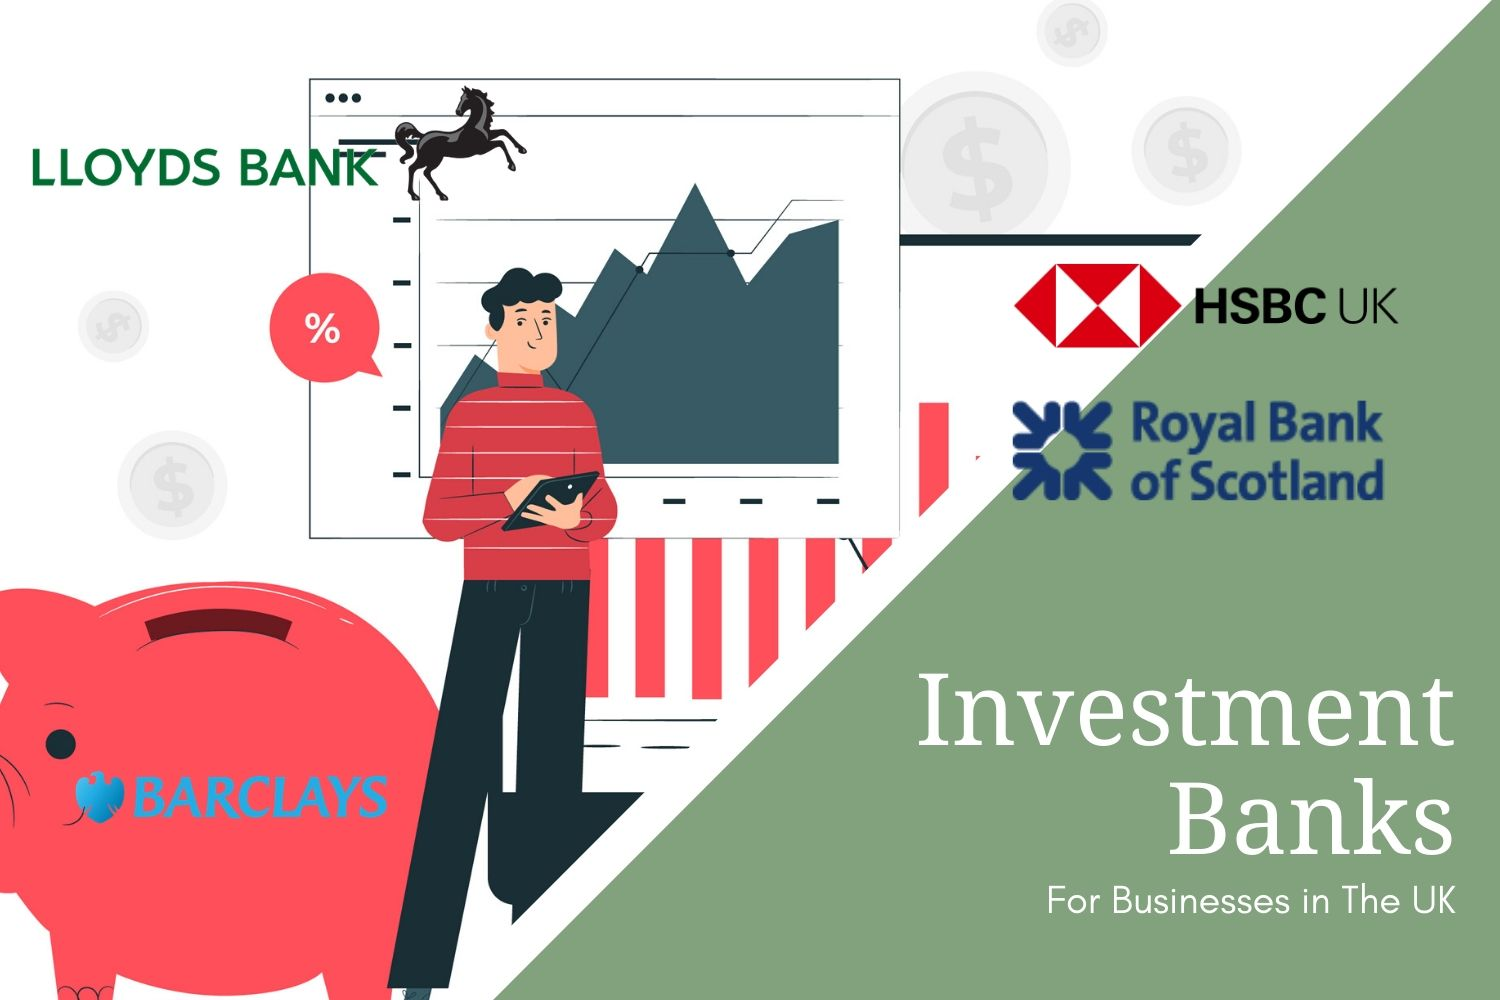 hsbc-uk Investment Bank